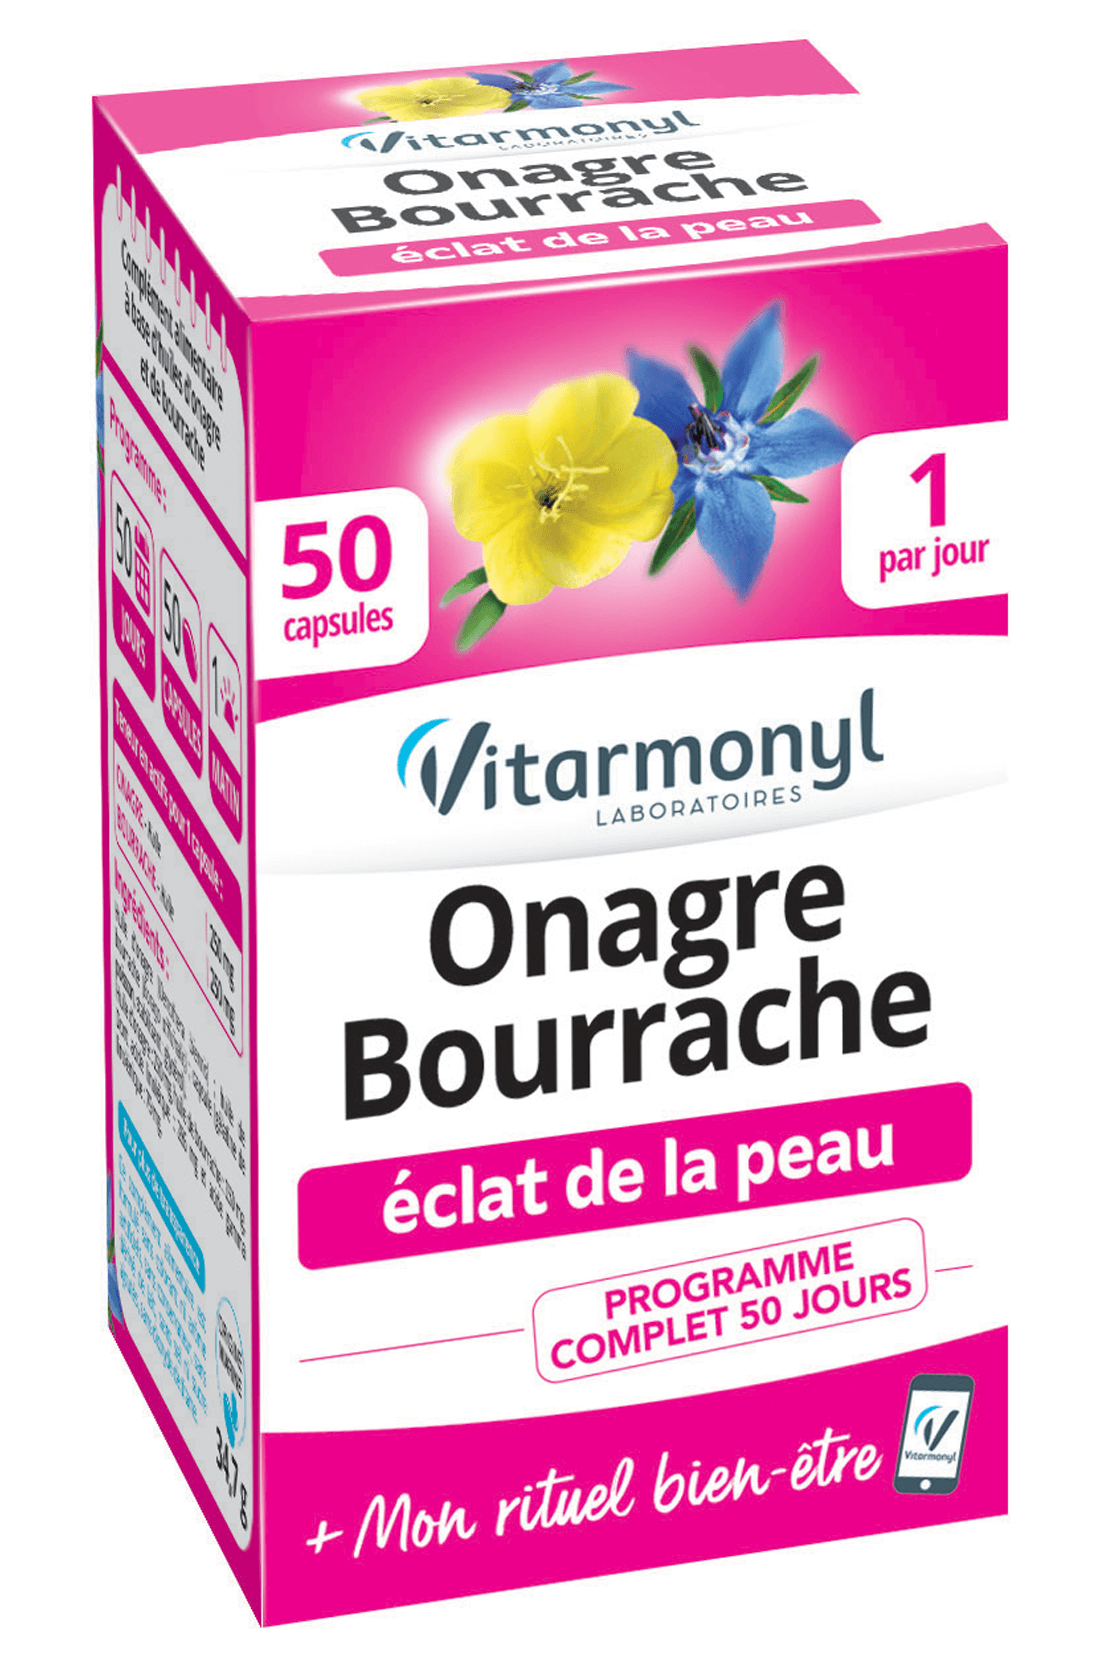 Onagre Bourrache